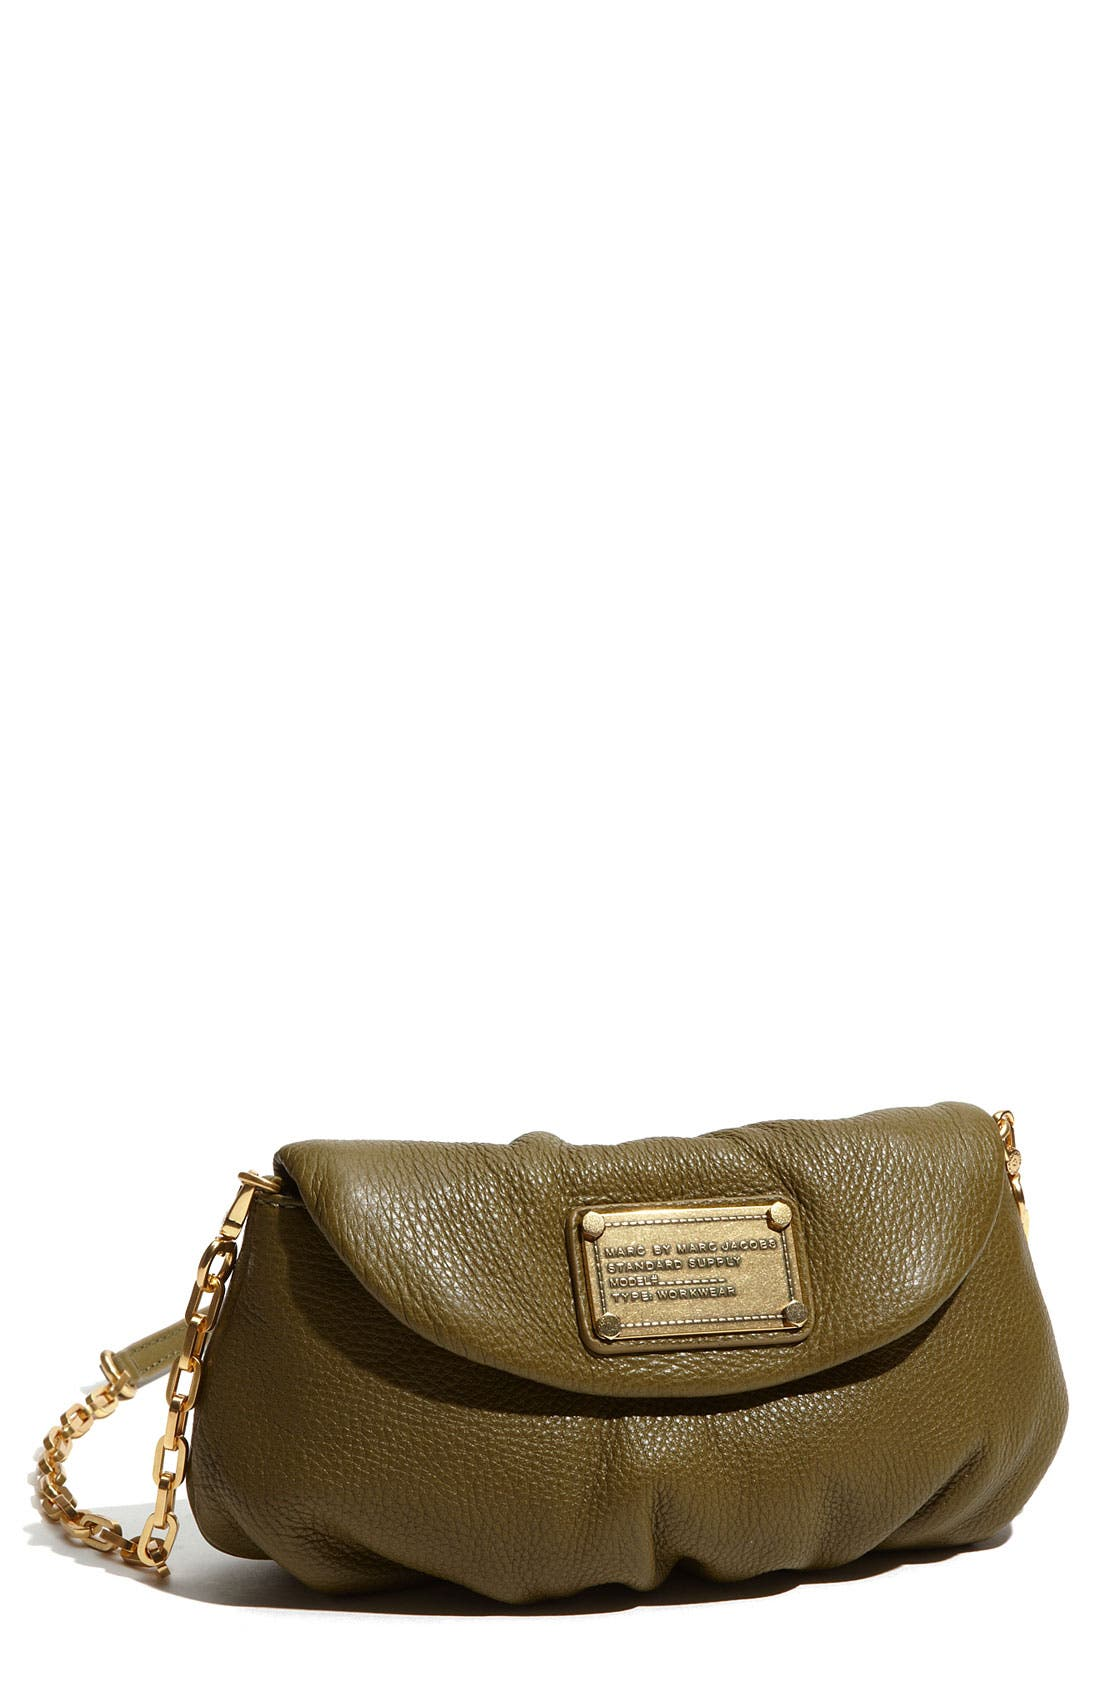 Alternate Image 1 Selected - MARC BY MARC JACOBS 'Classic Q - Karlie' Crossbody Flap Bag